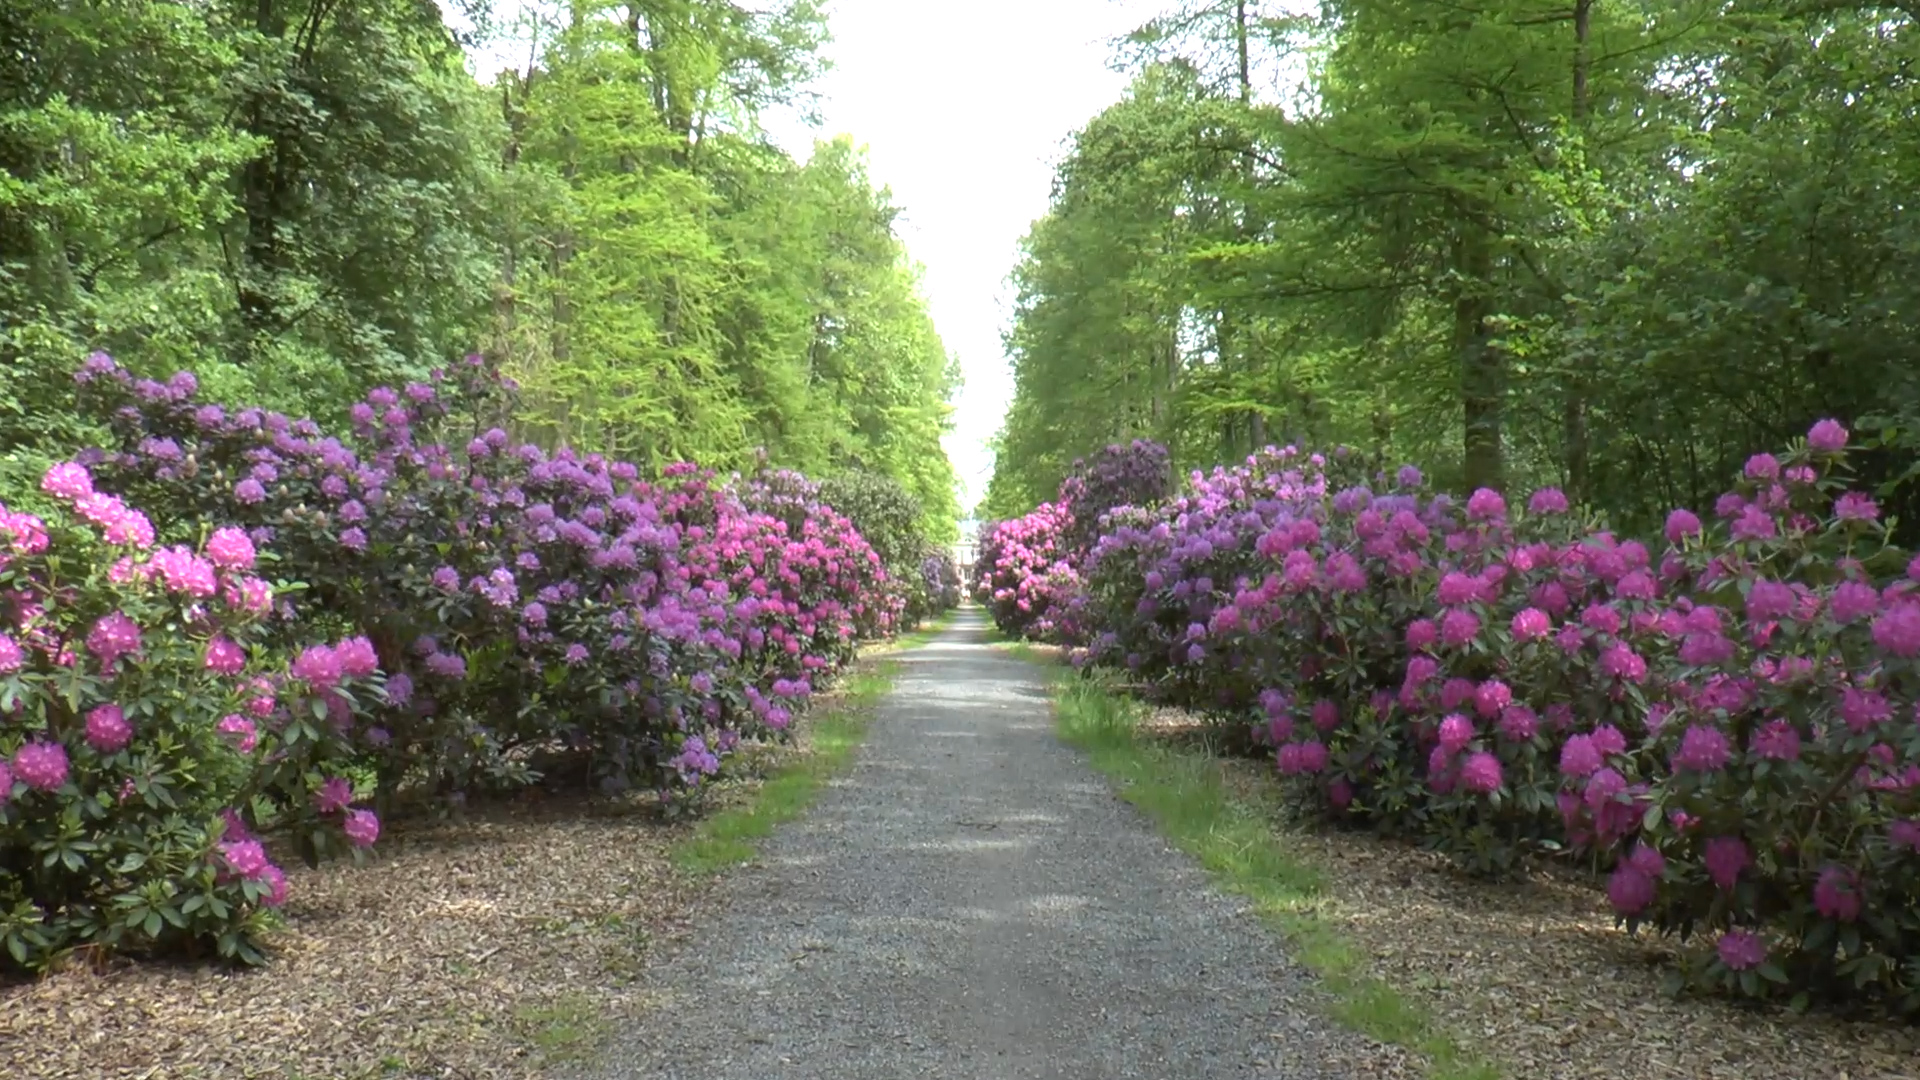 Rhododendron-Allee